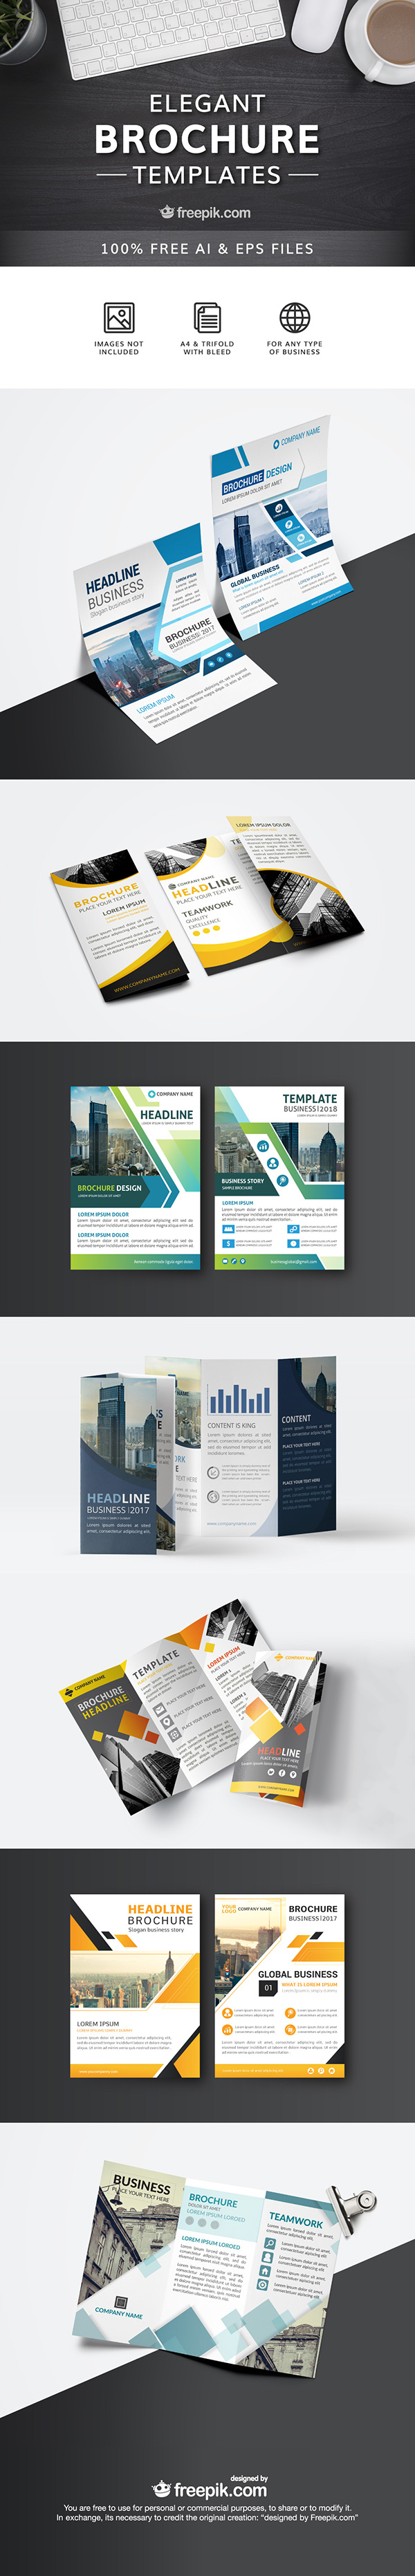 Free Resume Pamphlets Foster Care Brochure Template Free Free Cv Brochure Business  Free Resume Pamphletshtml  Business Pamphlet Templates Free